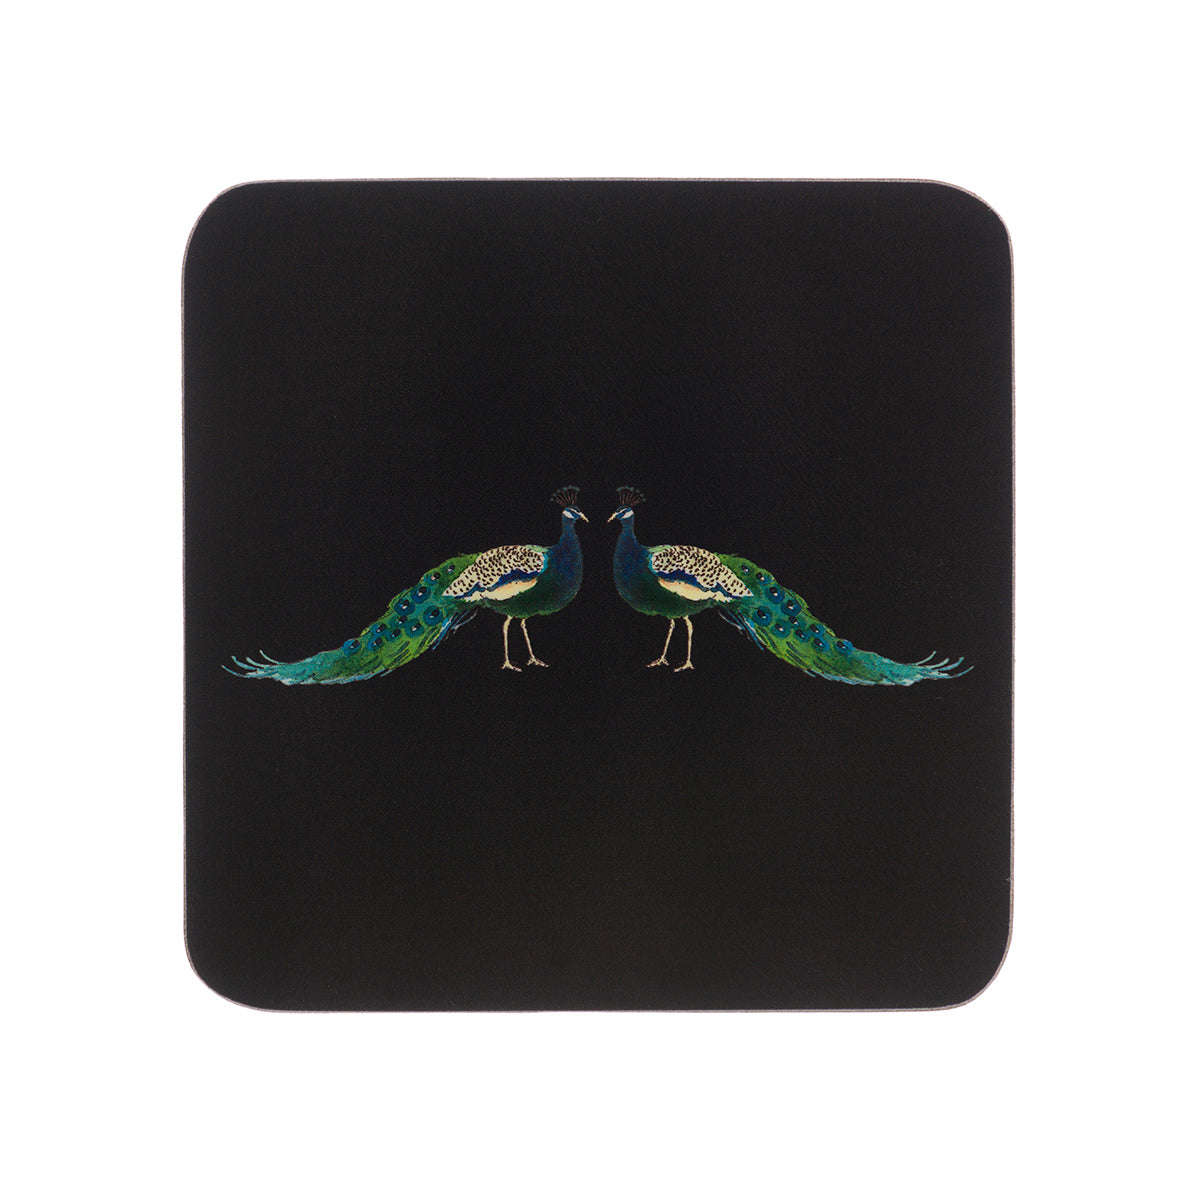 Peacocks Coasters (Set of 4)